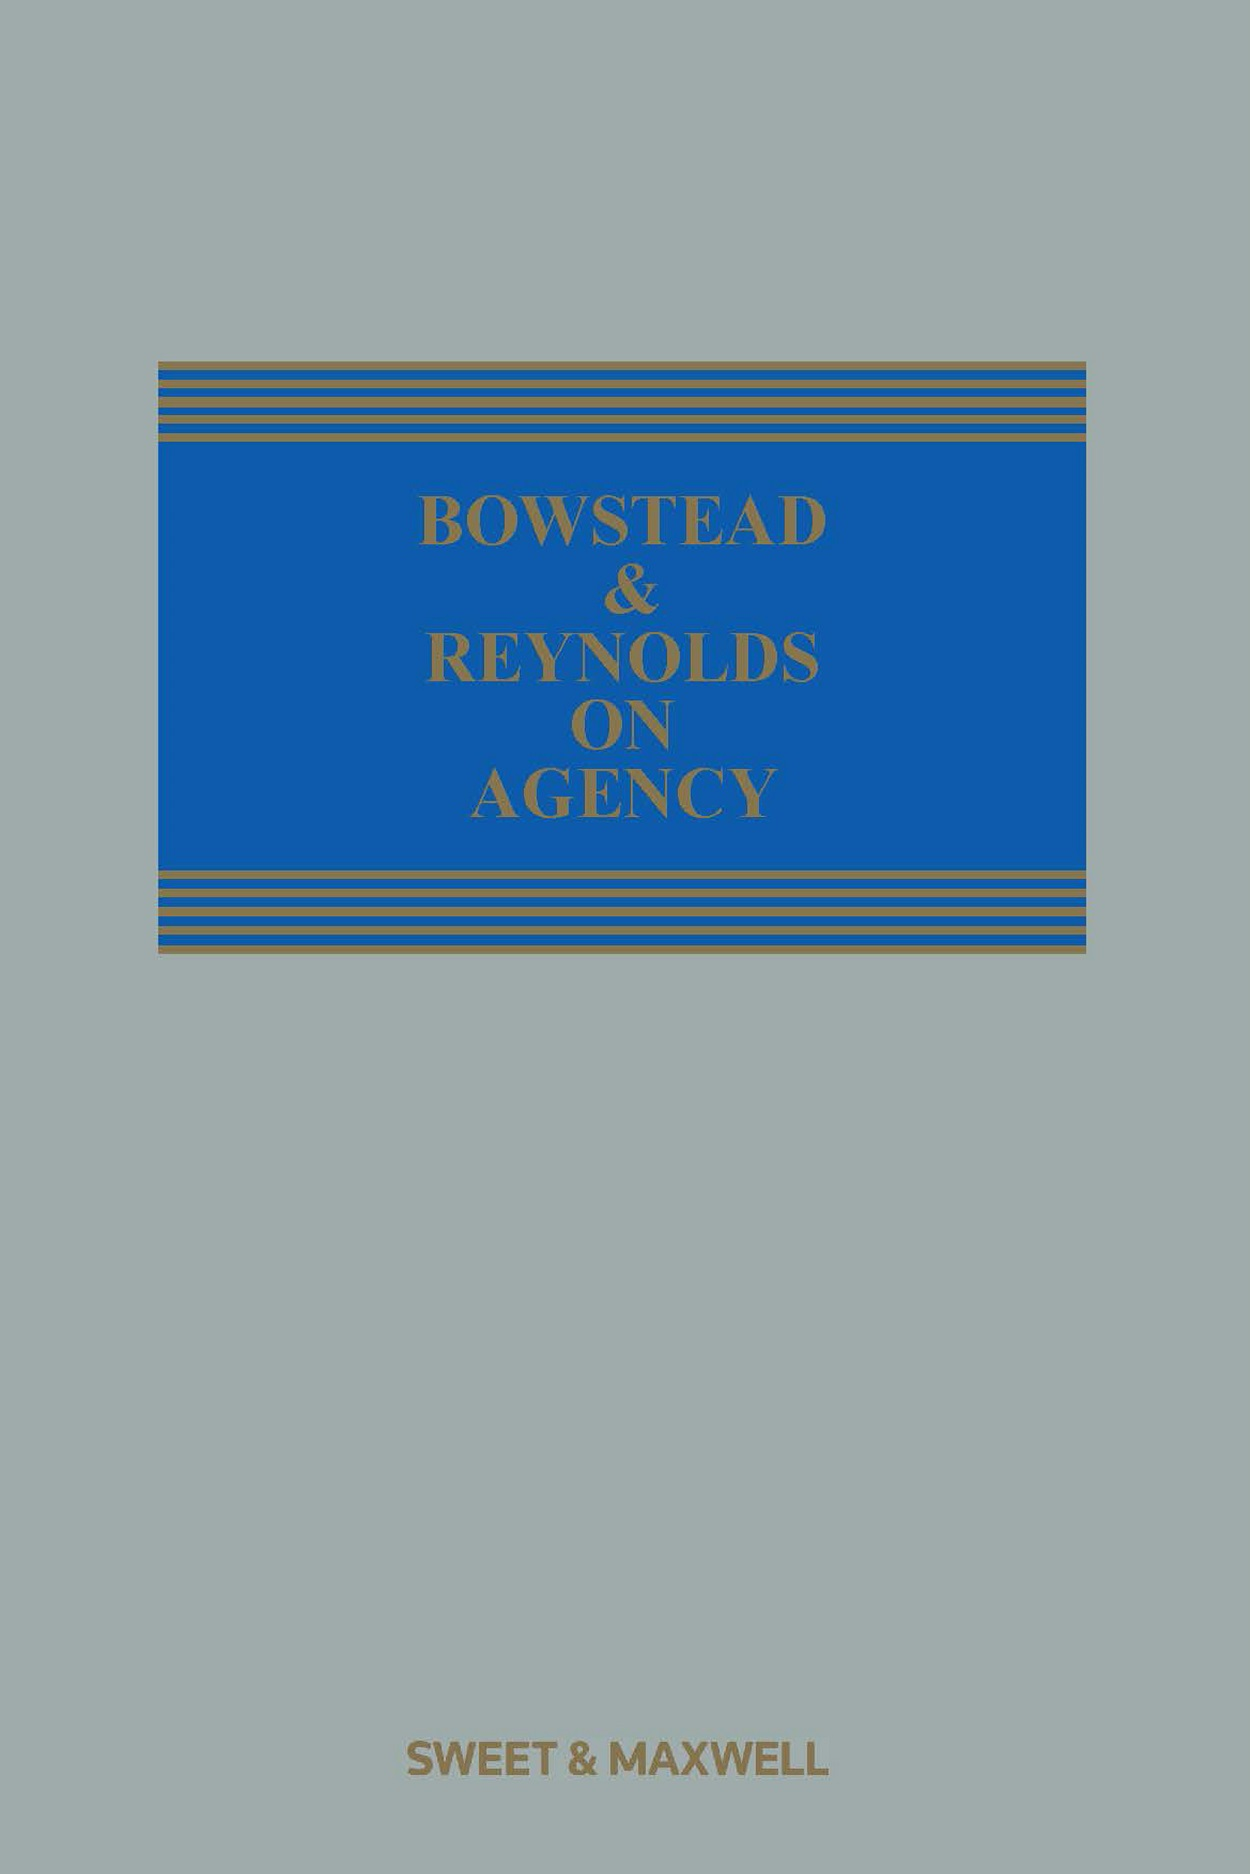 Bowstead and Reynolds on Agency 21st edition